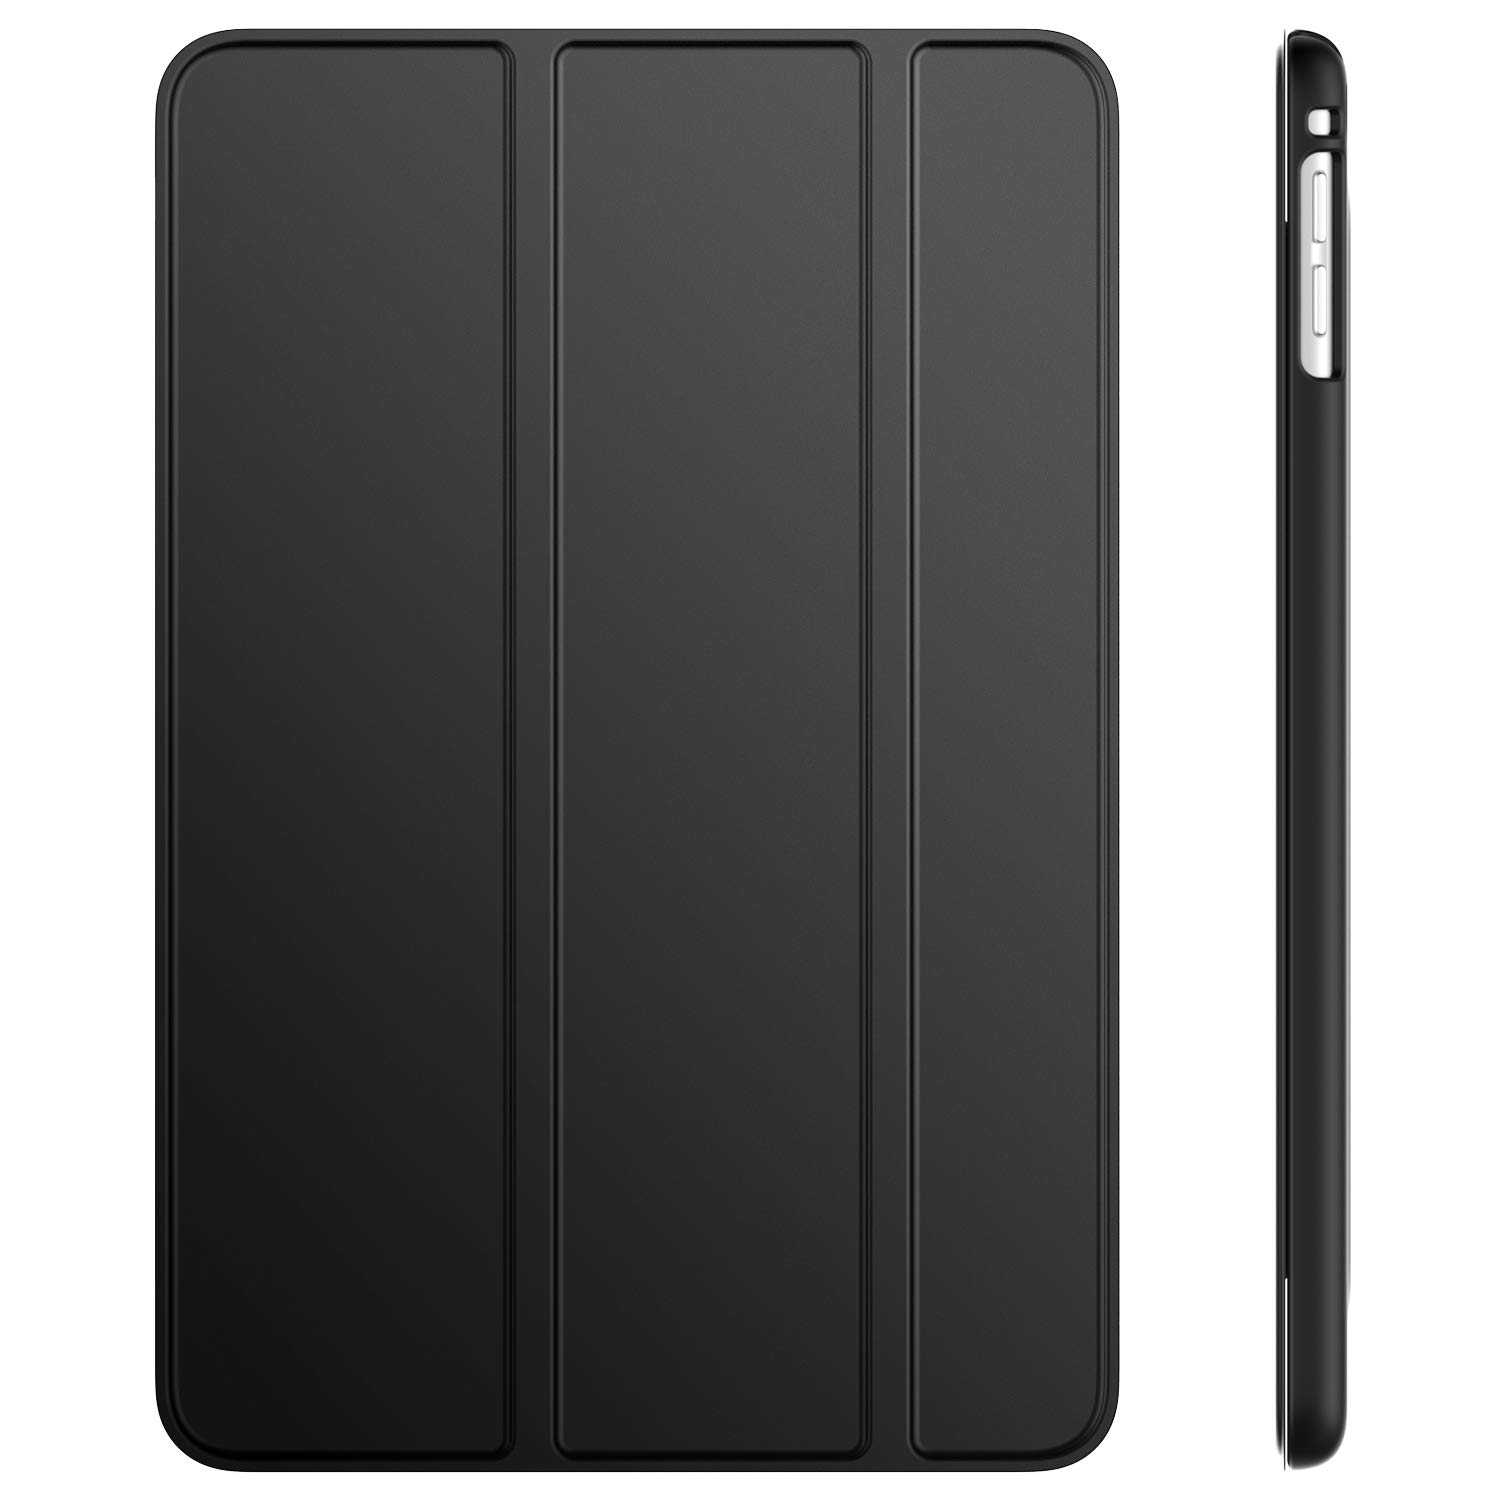 JETech Case for Apple iPad Mini 5 (2019 Model 5th Generation), Smart Cover with Auto Sleep/Wake, Black